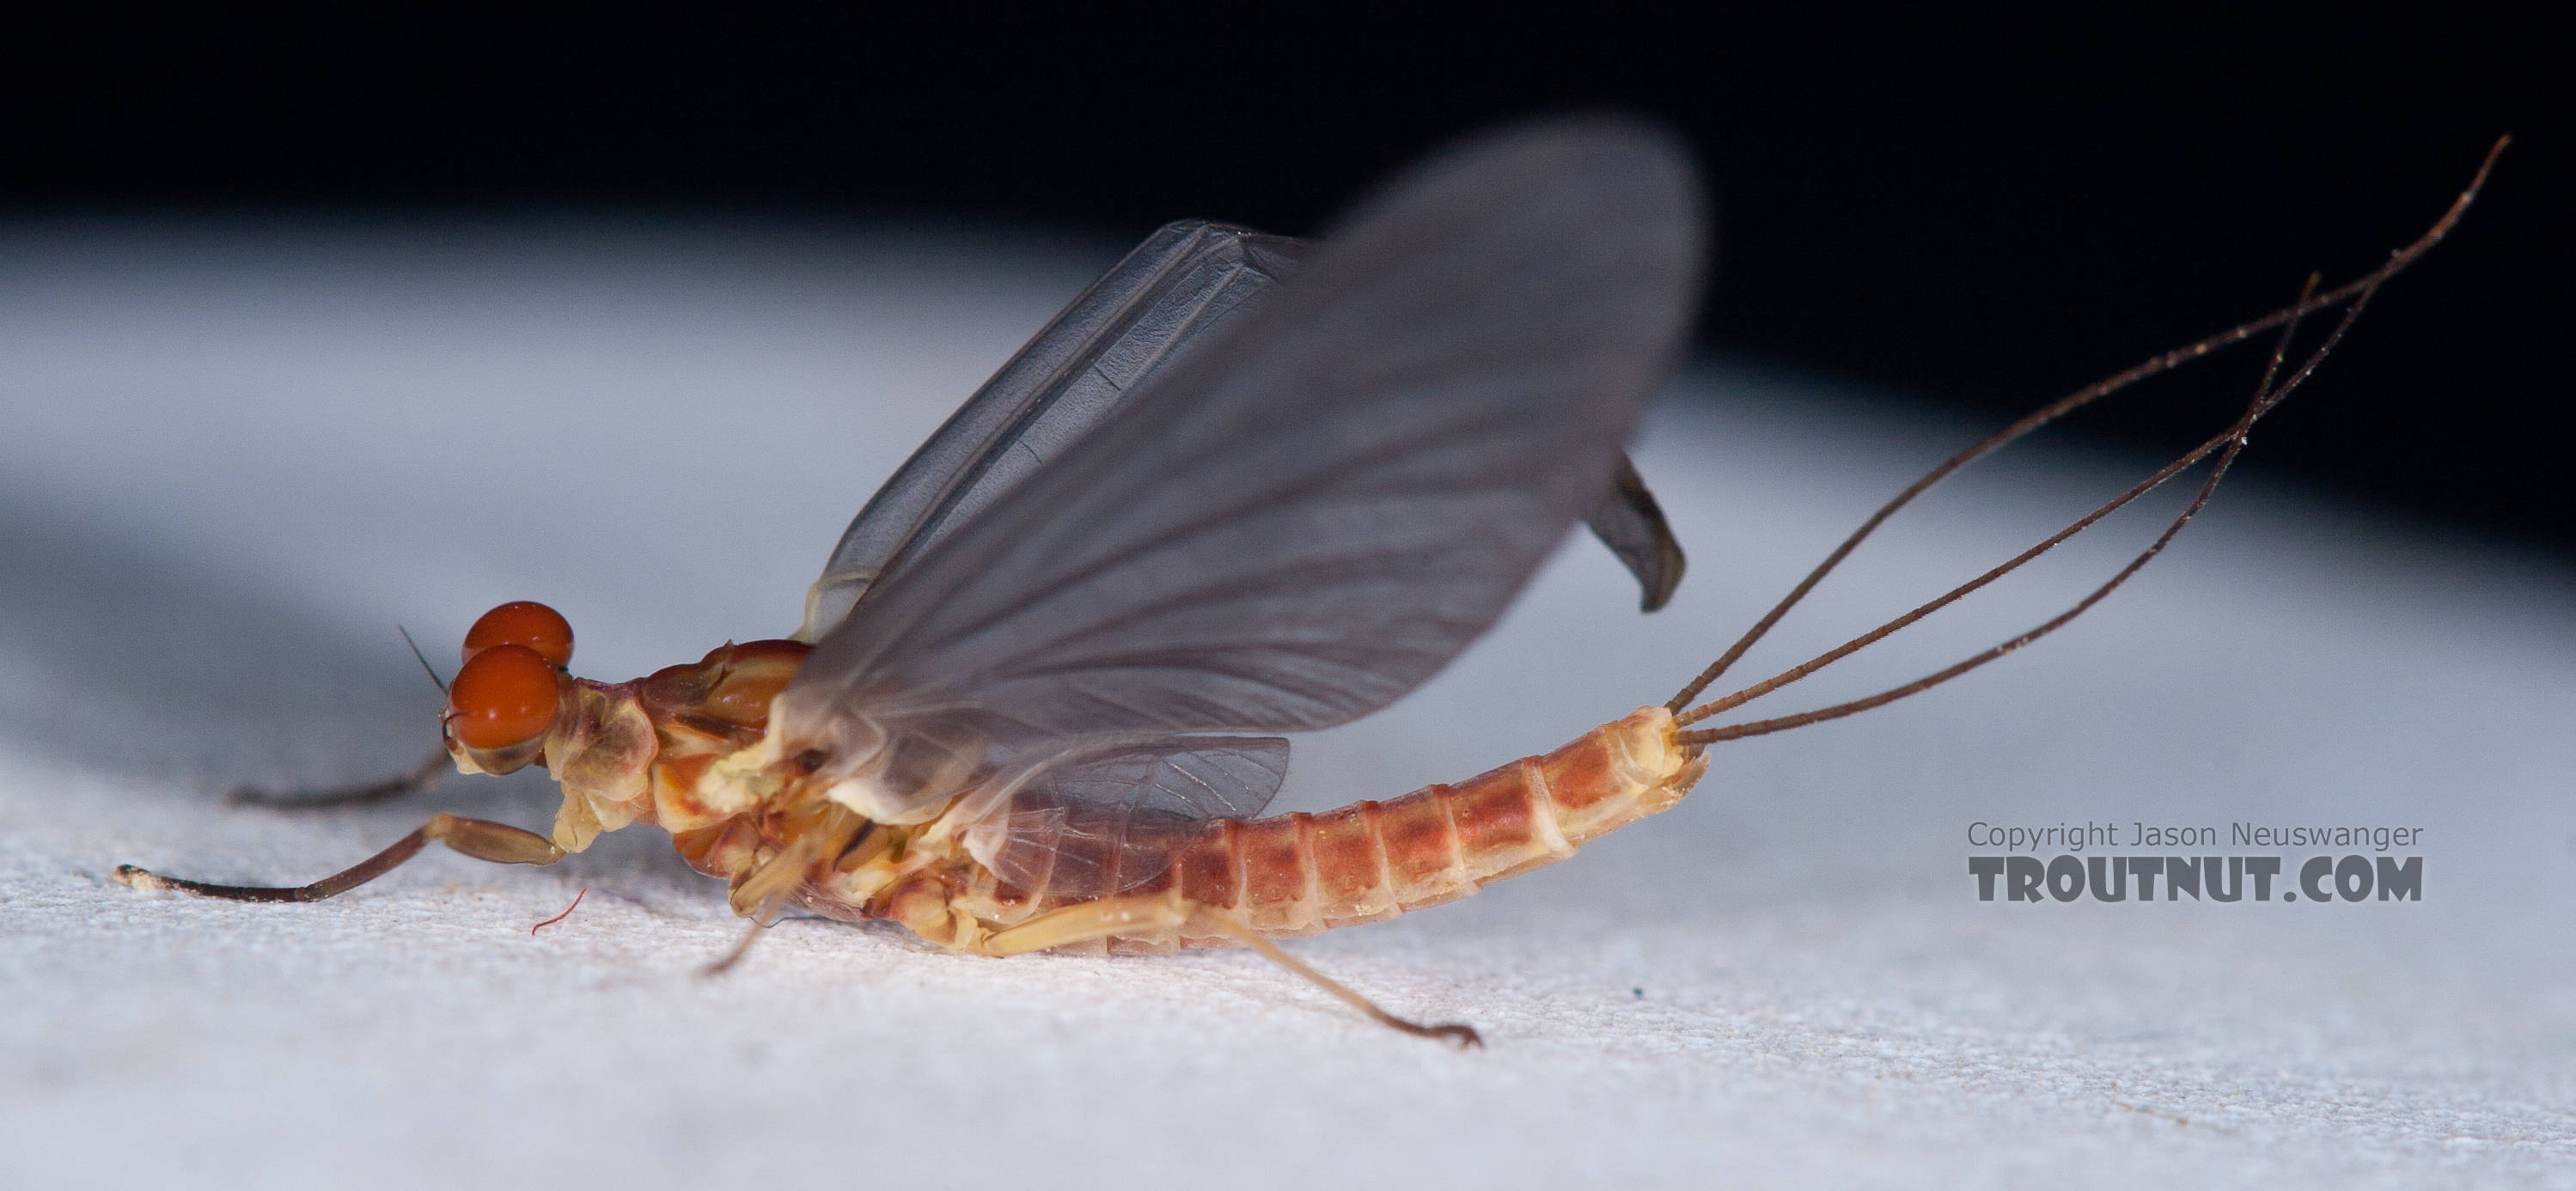 Male Ephemerella aurivillii Mayfly Dun from Nome Creek in Alaska